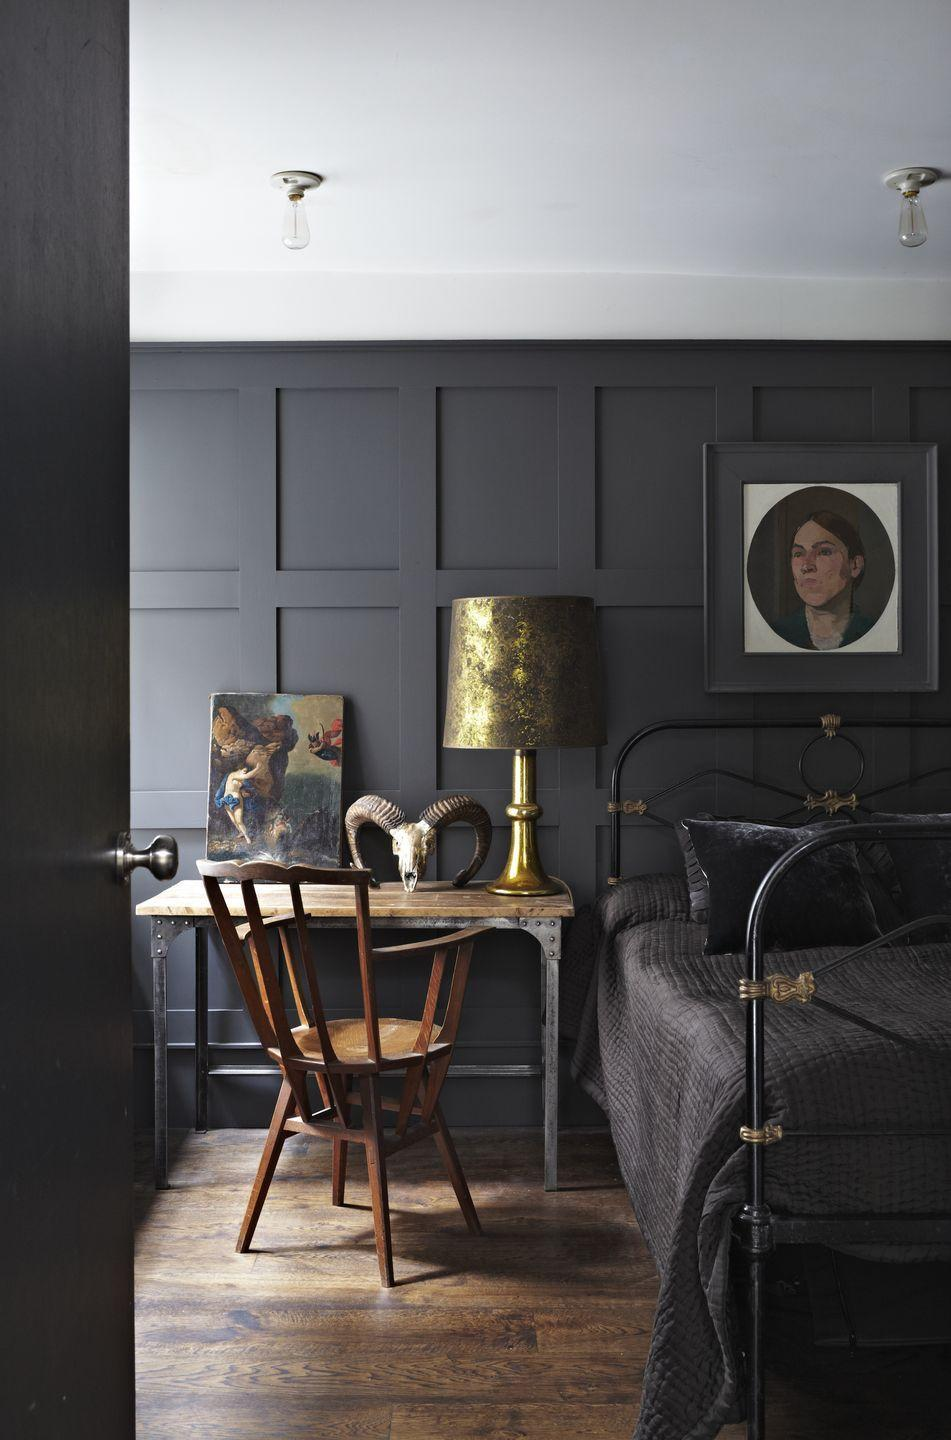 """<p>For a dramatic grey bedroom, paint panelling in deep grey to create a warm and cocooning feel. The stunning lamp and brass details on the black metal bed set it off perfectly and add shine, adding to the cosy feel. A traditional dark oak floor adds warmth and gives an aura of permanence. Painting the picture frame in the same colour as the wall means the image stands out.</p><p>Top Tip: If you don't have panelling, fake it with wallpaper - for example, this <a href=""""https://go.redirectingat.com?id=127X1599956&url=https%3A%2F%2Fwww.ilovewallpaper.co.uk%2Fwallpaper-c1%2Fcontemporary-wood-panel-wallpaper-soft-grey-p8002%2Fs8153&sref=https%3A%2F%2Fwww.housebeautiful.com%2Fuk%2Fdecorate%2Fbedroom%2Fg35432015%2Fgrey-bedroom-ideas%2F"""" rel=""""nofollow noopener"""" target=""""_blank"""" data-ylk=""""slk:Contemporary Wood Panel Wallpaper from I Love Wallpaper"""" class=""""link rapid-noclick-resp"""">Contemporary Wood Panel Wallpaper from I Love Wallpaper</a> or this beautiful <a href=""""https://go.redirectingat.com?id=127X1599956&url=https%3A%2F%2Fwww.worldofwallpaper.com%2Fimitations-marble-wood-panel-effect-wallpaper-teal-erismann-6319-18.html&sref=https%3A%2F%2Fwww.housebeautiful.com%2Fuk%2Fdecorate%2Fbedroom%2Fg35432015%2Fgrey-bedroom-ideas%2F"""" rel=""""nofollow noopener"""" target=""""_blank"""" data-ylk=""""slk:Marble Wood Panel Effect Wallpaper from World of Wallpaper"""" class=""""link rapid-noclick-resp"""">Marble Wood Panel Effect Wallpaper from World of Wallpaper</a>.</p><p>Pictured: <a href=""""https://go.redirectingat.com?id=127X1599956&url=https%3A%2F%2Fwww.farrow-ball.com%2Fen-gb%2Fpaint-colours%2Frailings%3Fsku%3D5051836127312&sref=https%3A%2F%2Fwww.housebeautiful.com%2Fuk%2Fdecorate%2Fbedroom%2Fg35432015%2Fgrey-bedroom-ideas%2F"""" rel=""""nofollow noopener"""" target=""""_blank"""" data-ylk=""""slk:Railings Modern Eggshell, Farrow & Ball"""" class=""""link rapid-noclick-resp"""">Railings Modern Eggshell, Farrow & Ball</a></p>"""